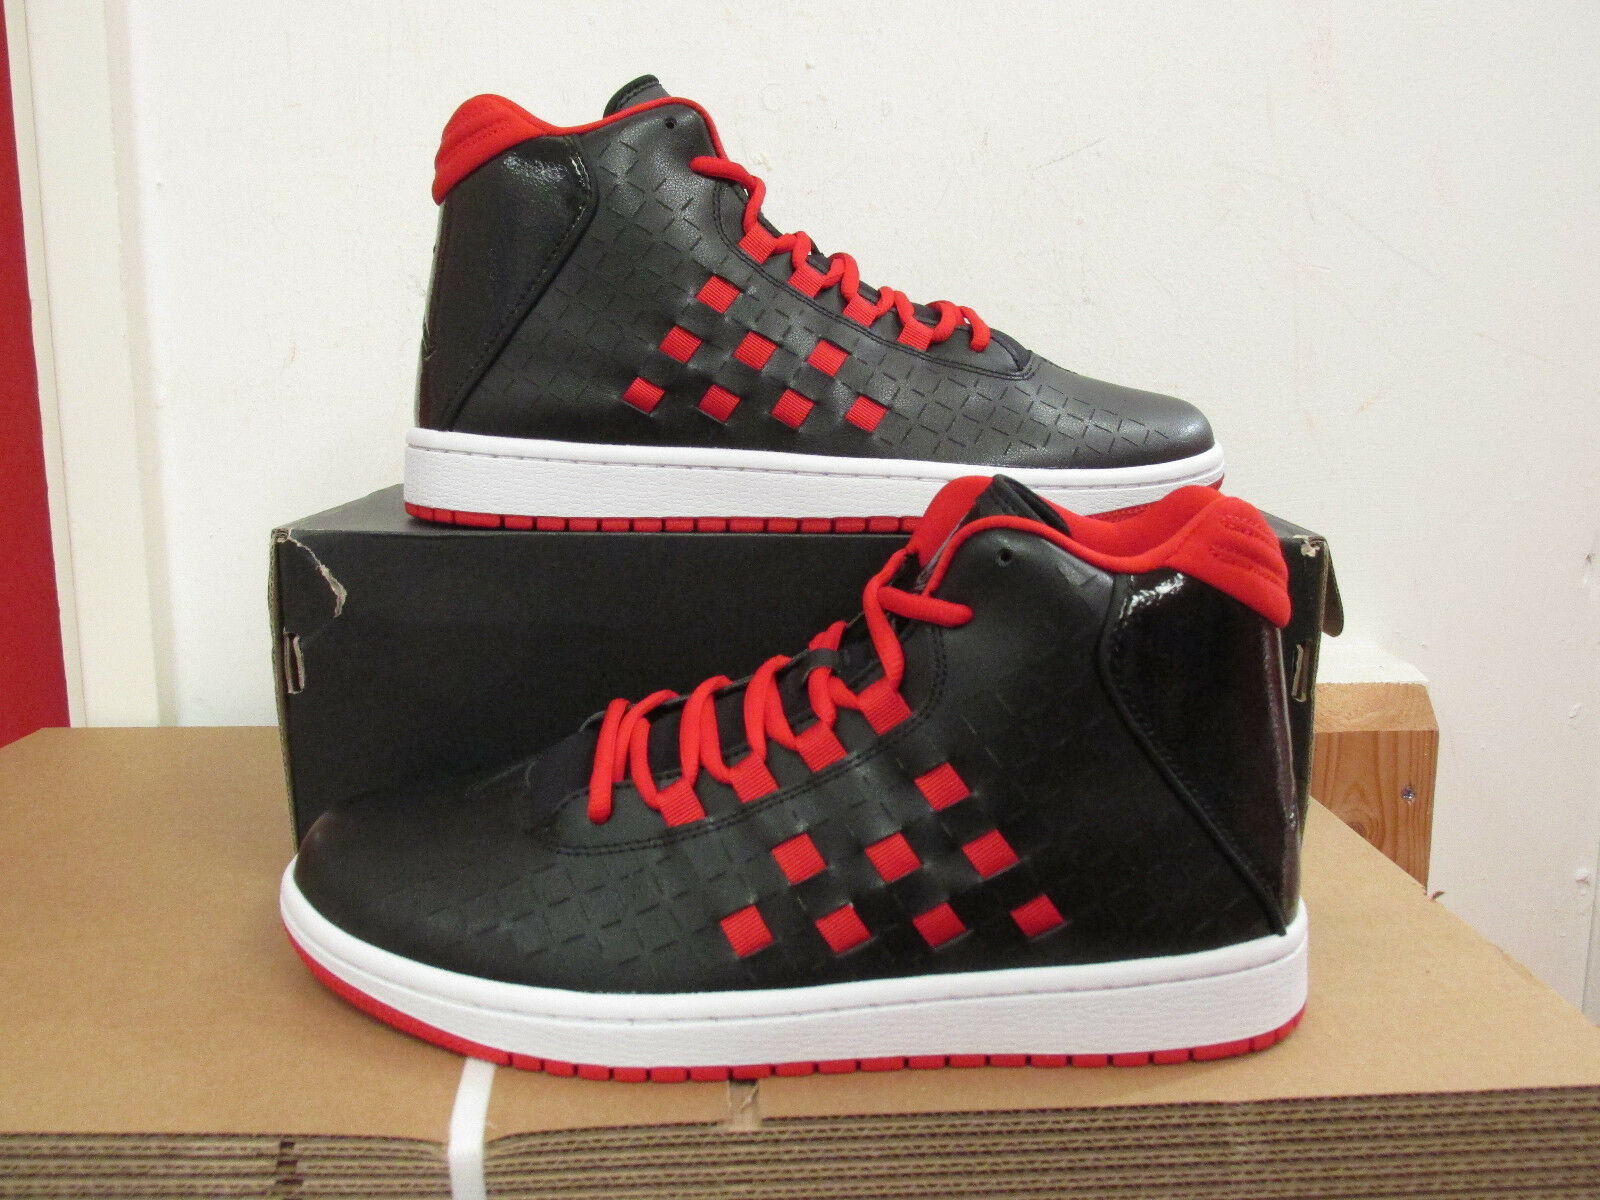 Nike Air Jordan Illusion 705141 001 homme  trainers sneakers CLEARANCE